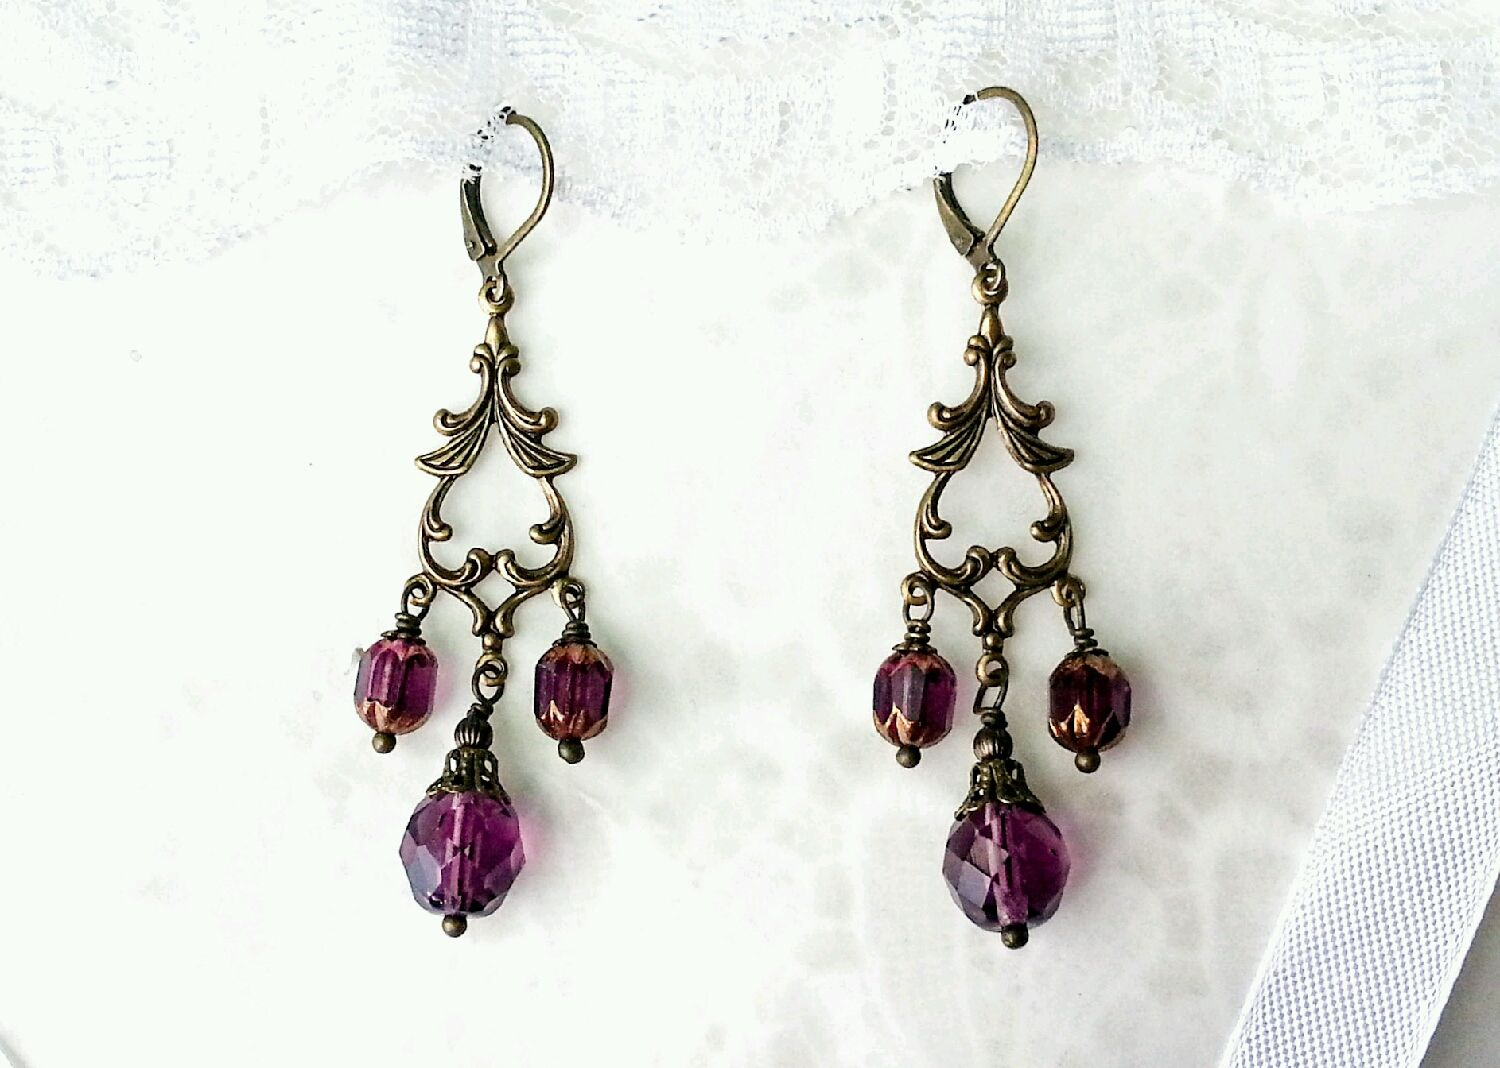 Long vintage chandelier earrings wine color with faceted beads long vintage chandelier earrings wine color with faceted beads aloadofball Image collections